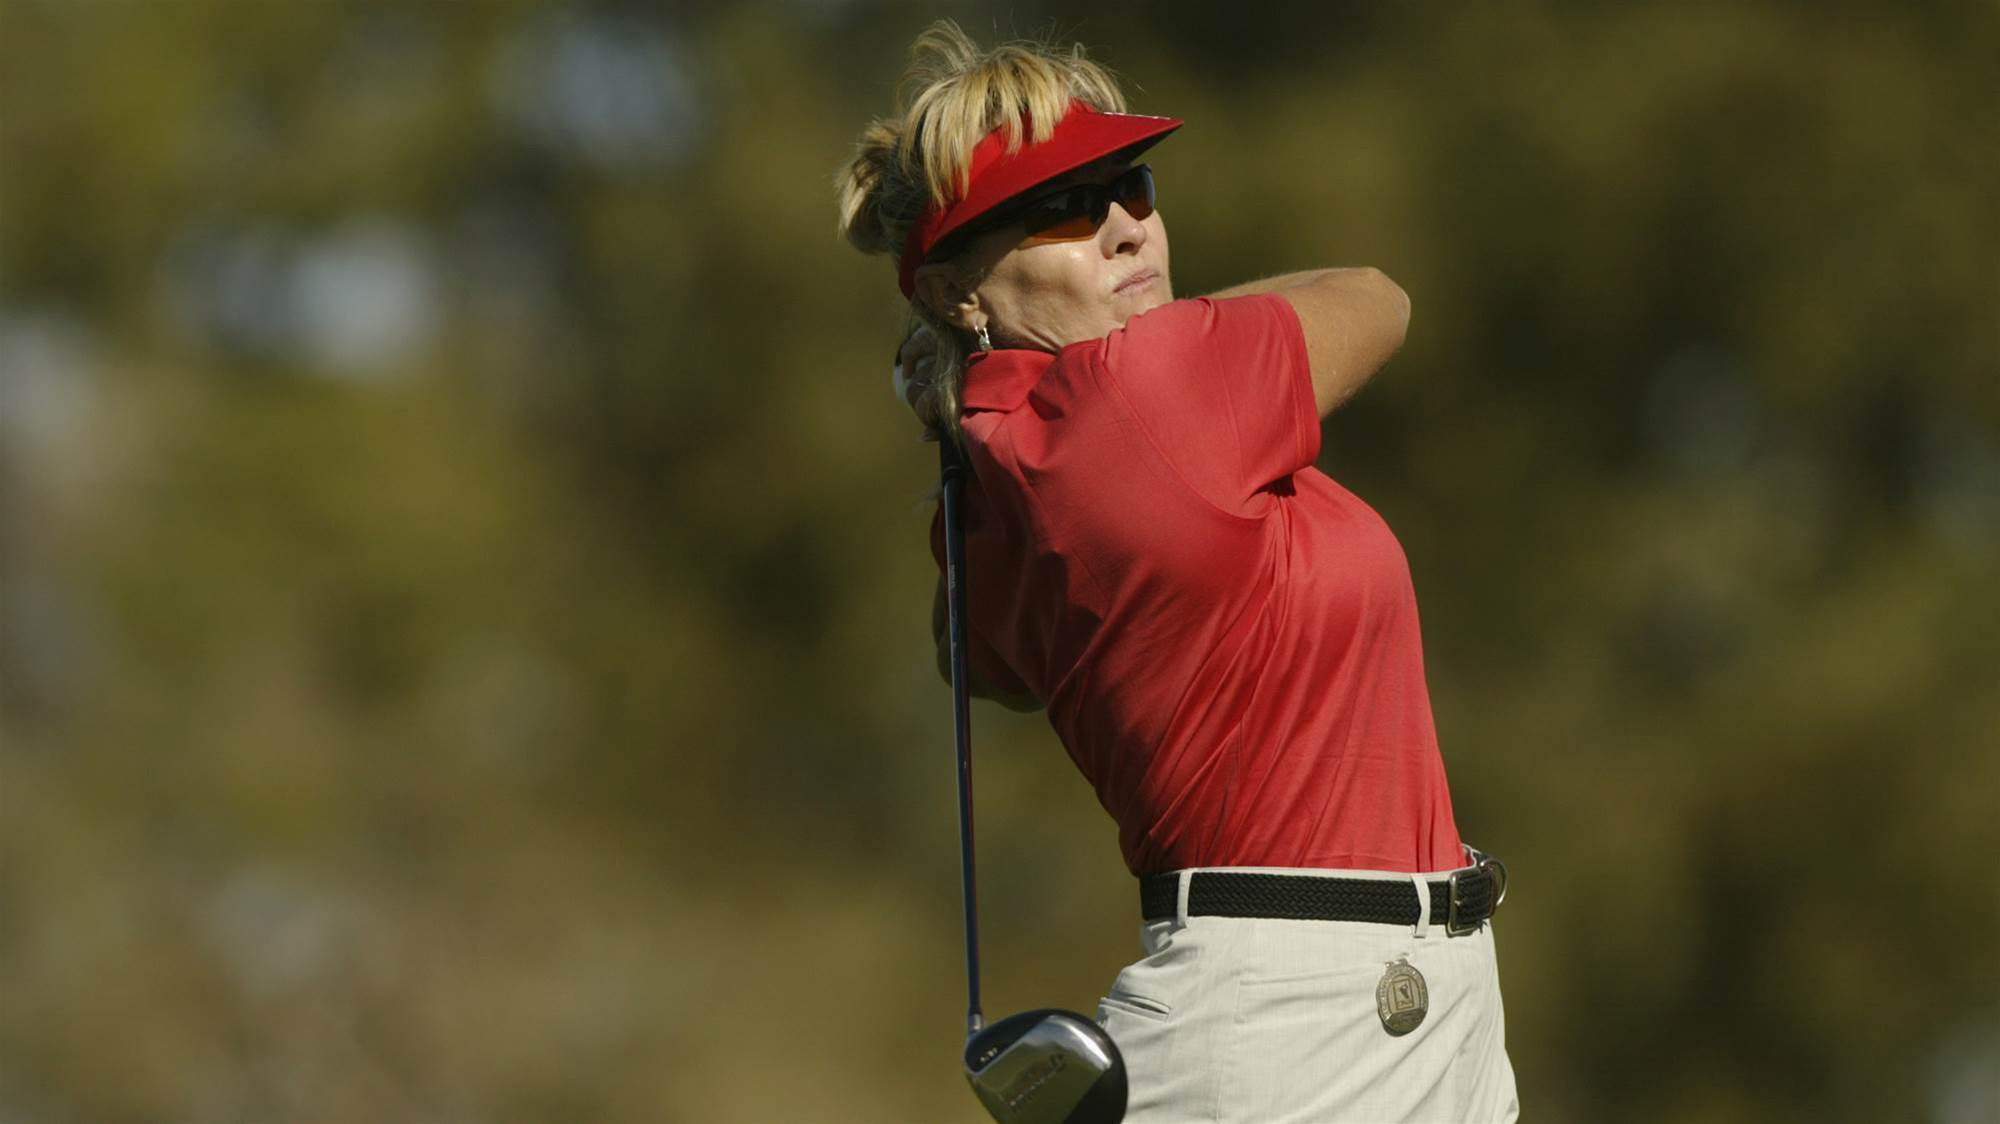 Stephenson inducted into World Golf Hall of Fame